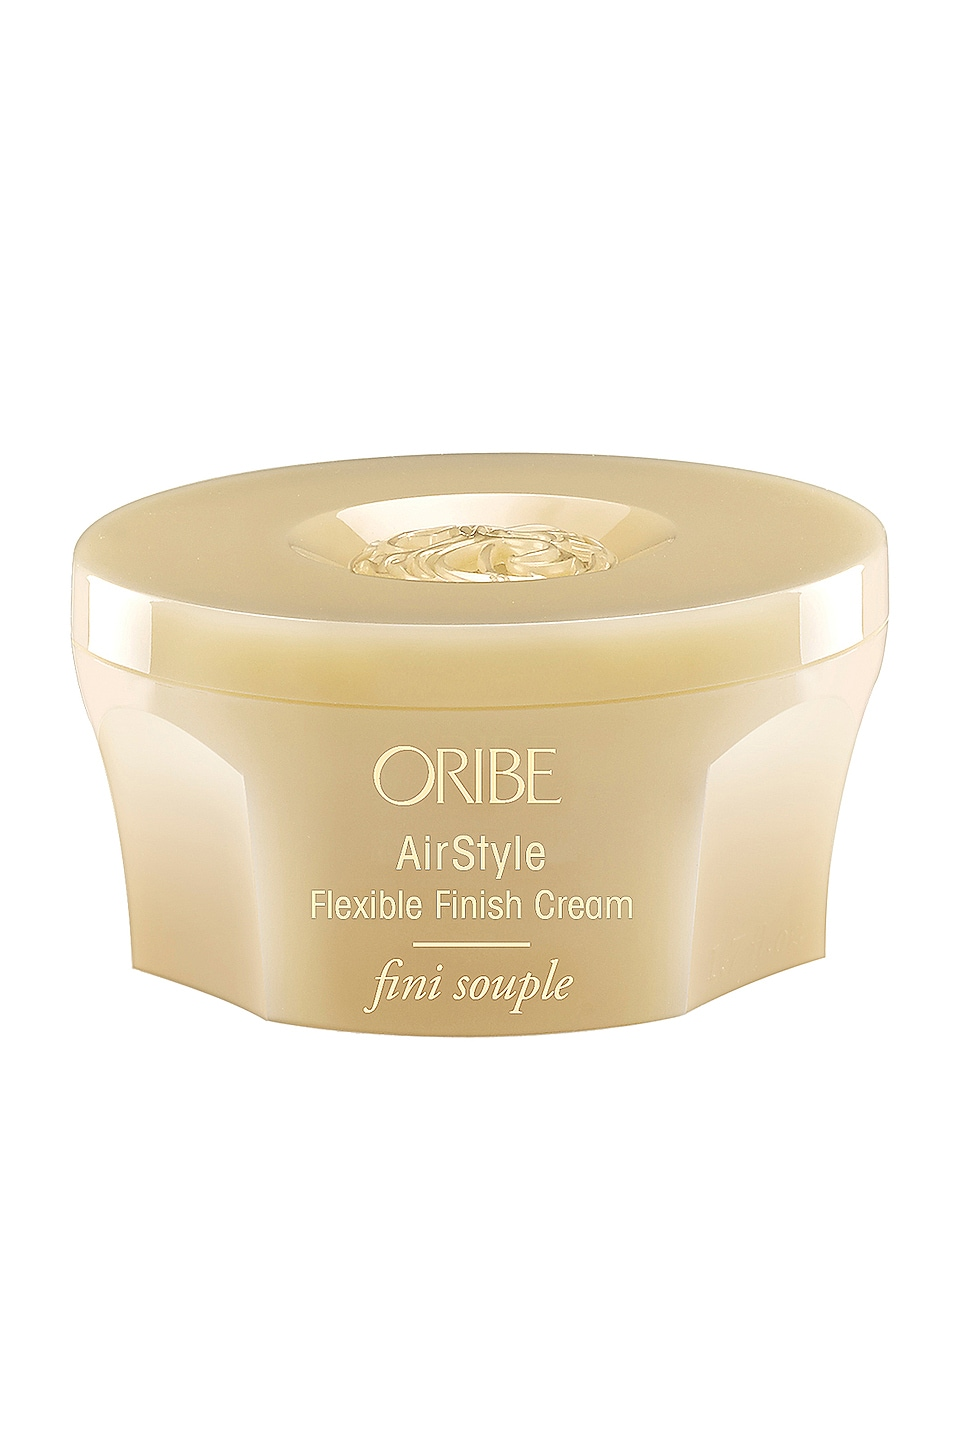 Oribe Airstyle Flexible Finish Creme